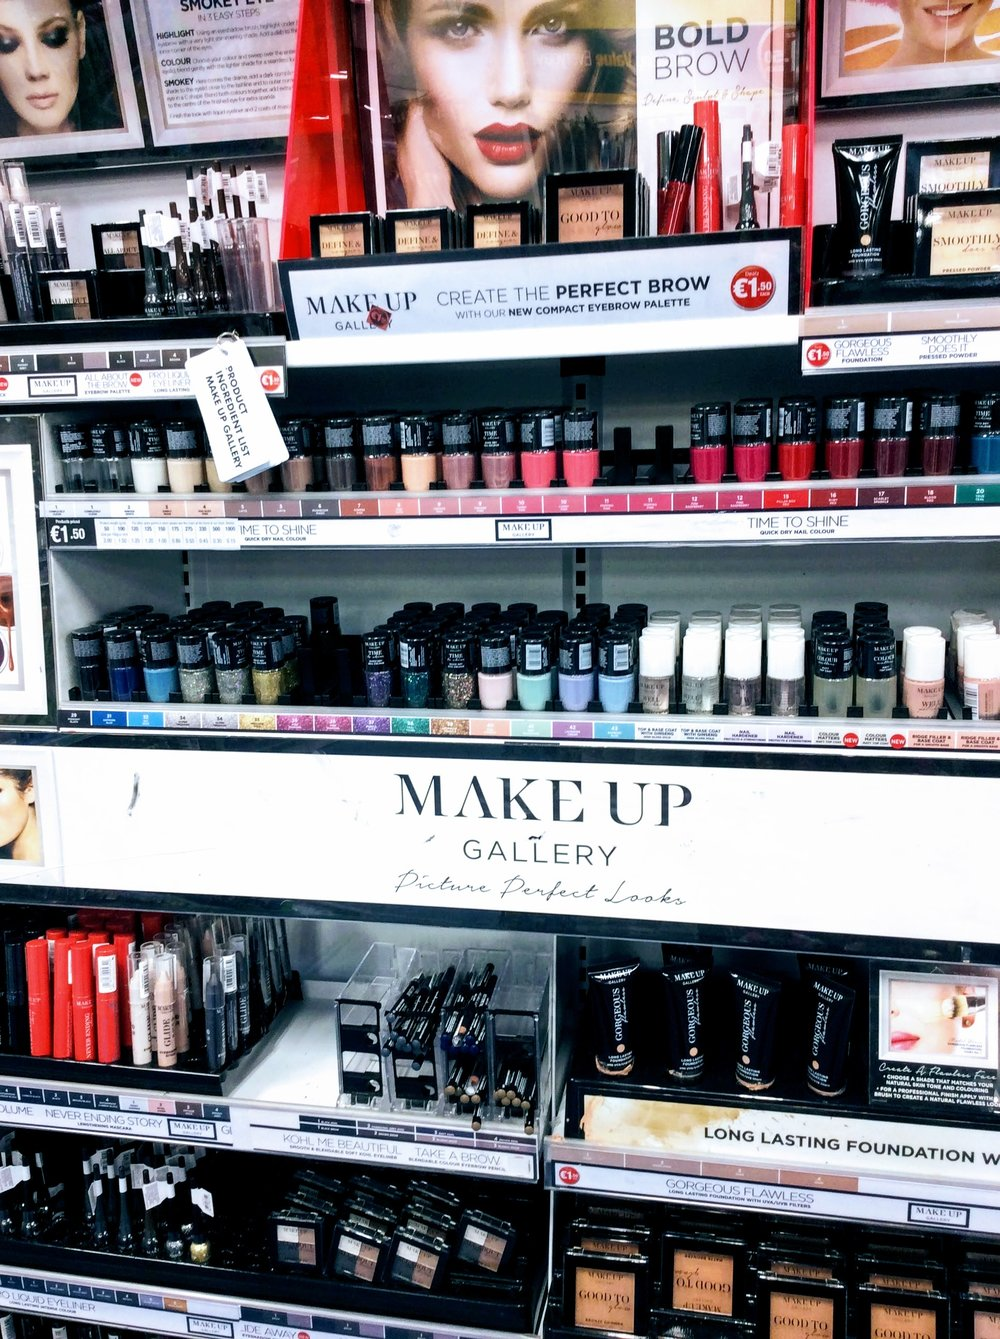 dealz stock very impressive variety of cosmetics including a full range of brow products. All €1.49.